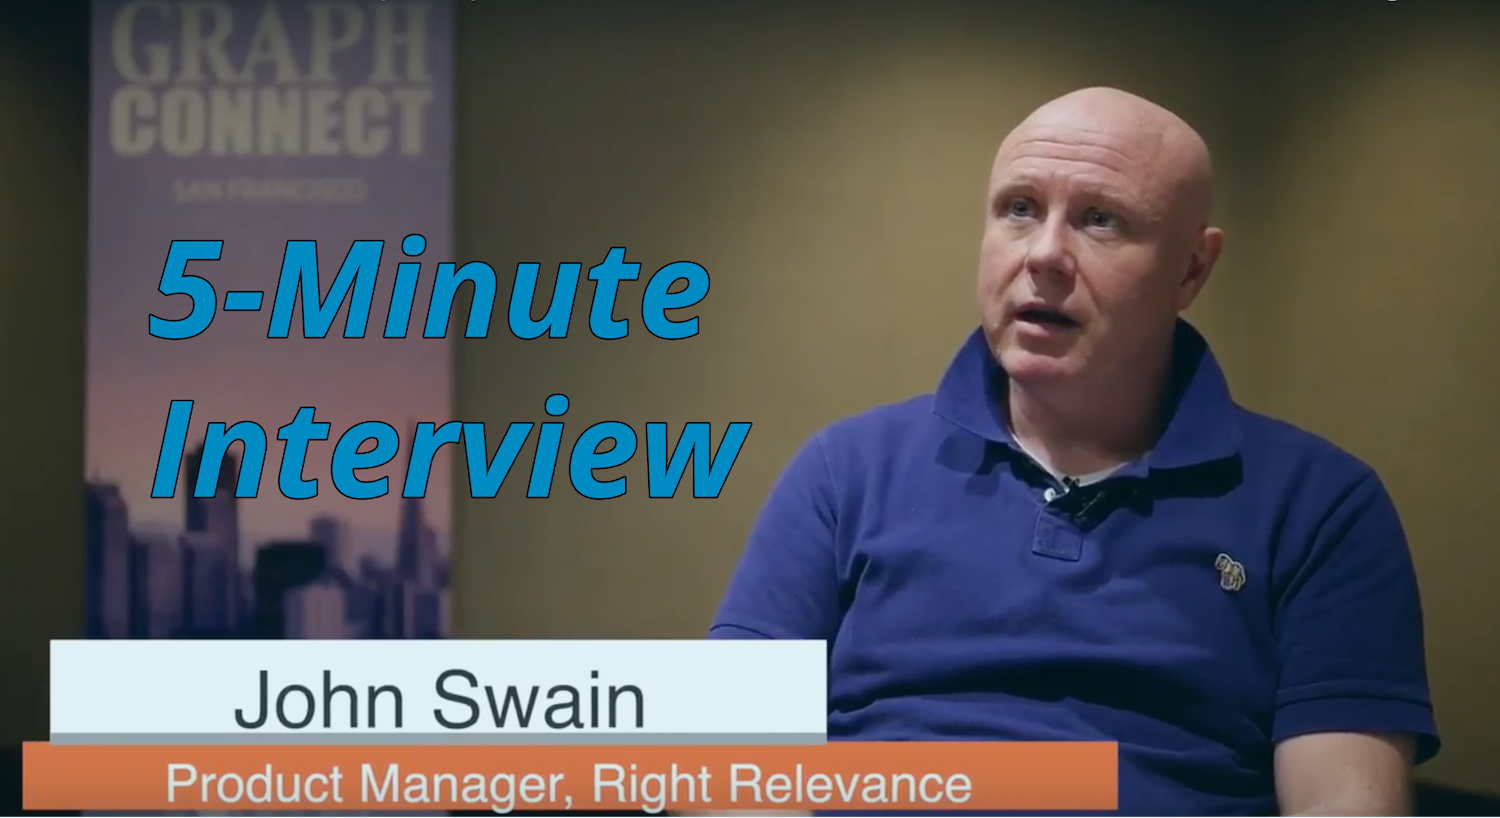 Catch this week's 5-Minute Interview with John Swain, Product Manager for Data Science at Right Relevance